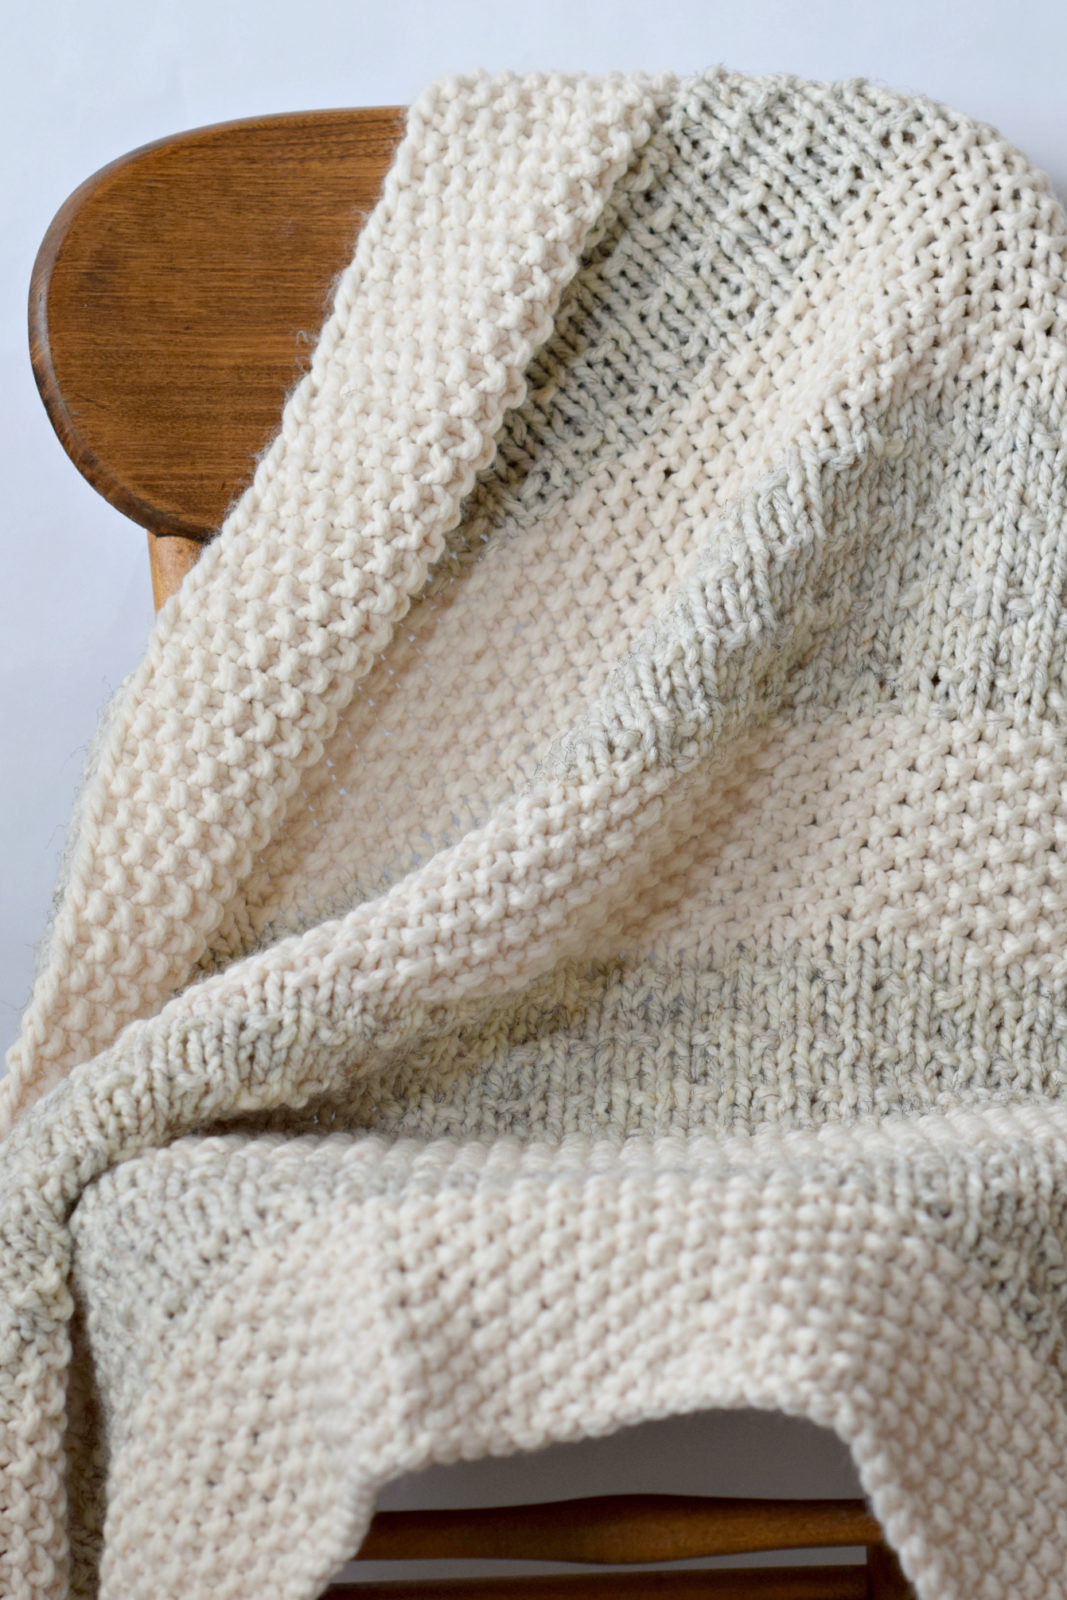 Easy Knitting Patterns New Easy Heirloom Knit Blanket Pattern – Mama In A Stitch Of Superb 44 Ideas Easy Knitting Patterns